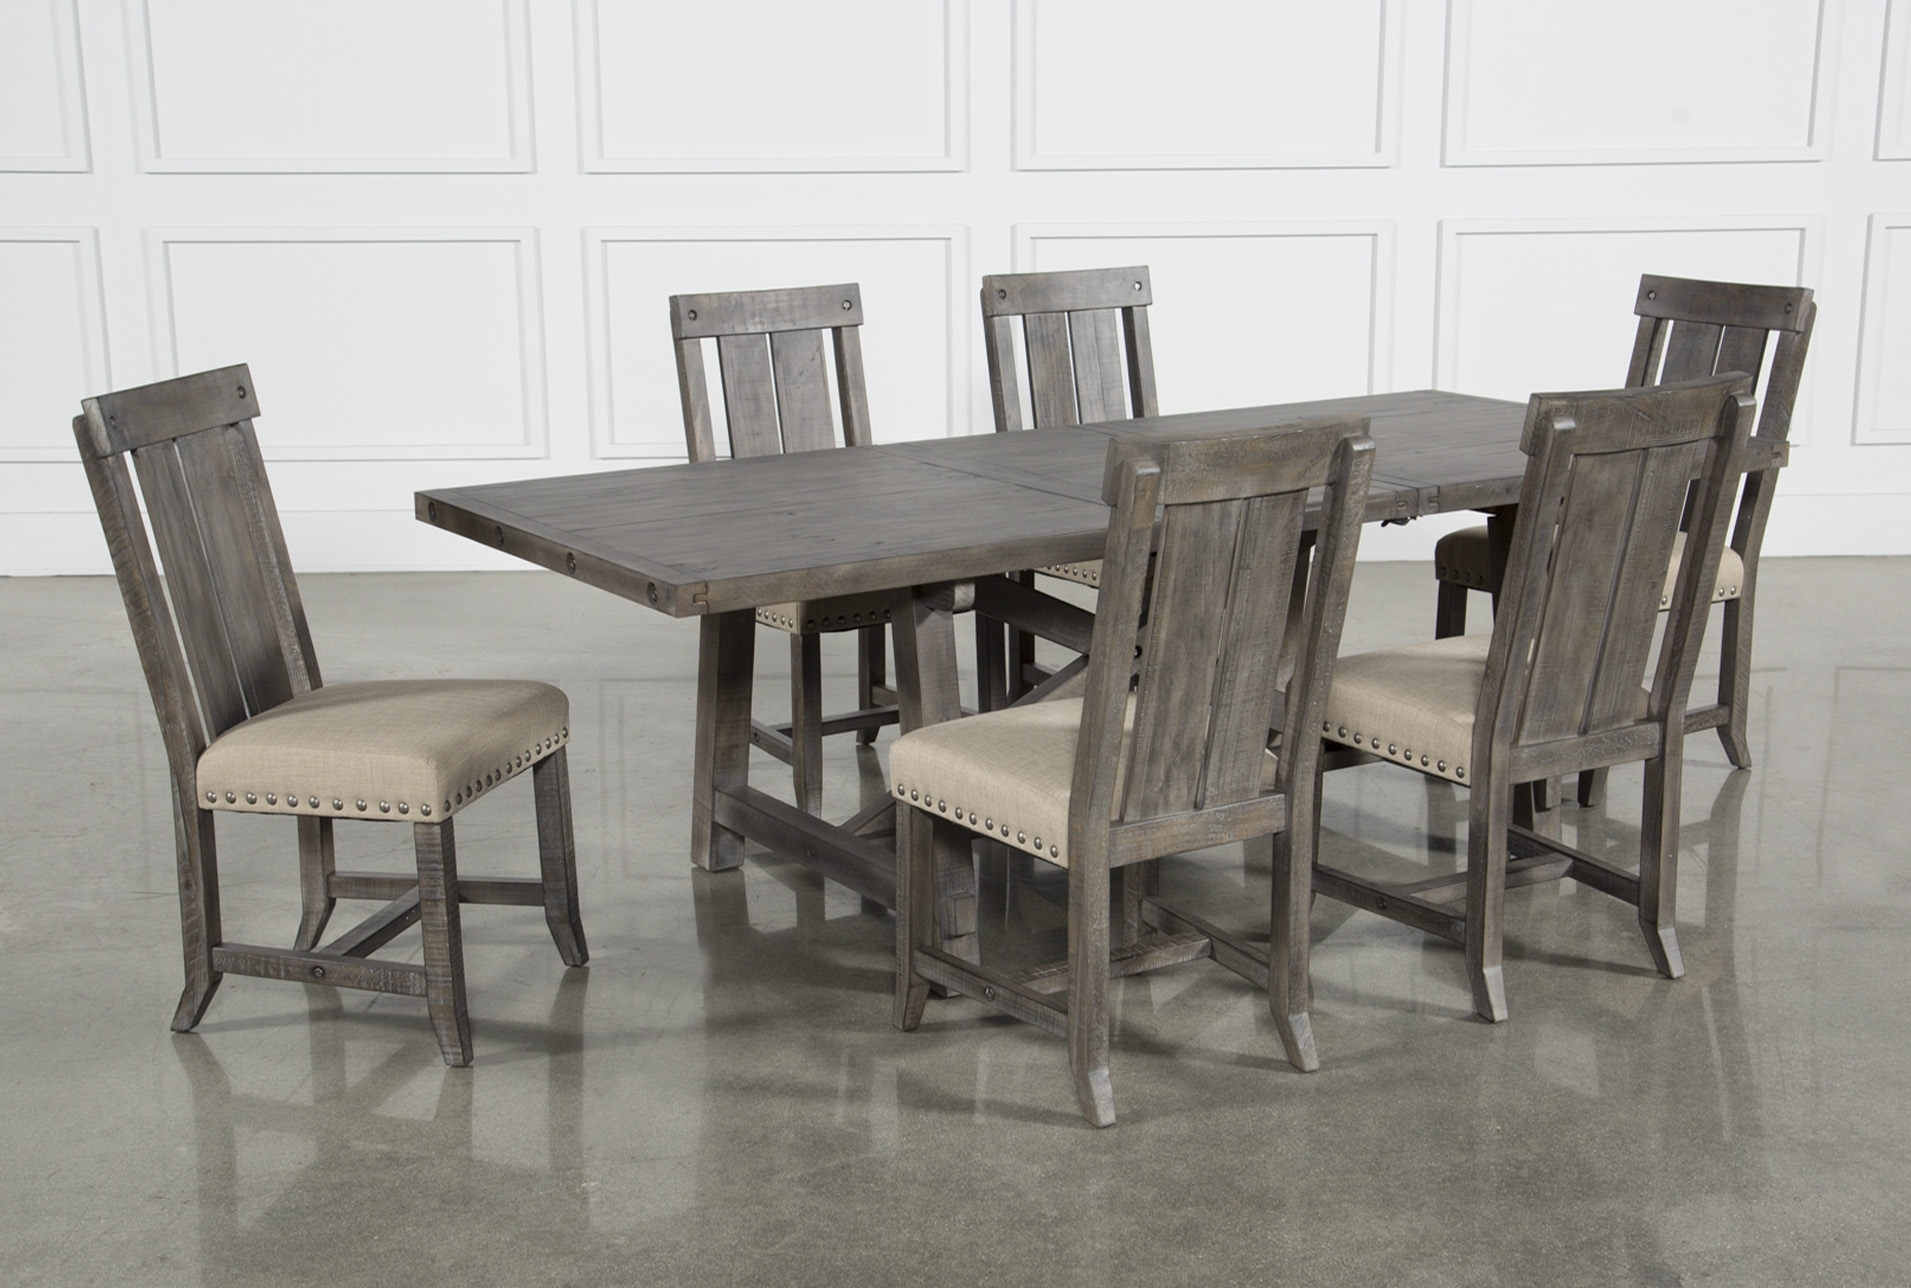 Jaxon Grey 7 Piece Rectangle Extension Dining Set W/wood Chairs Within Recent Jaxon Grey Rectangle Extension Dining Tables (Image 12 of 20)